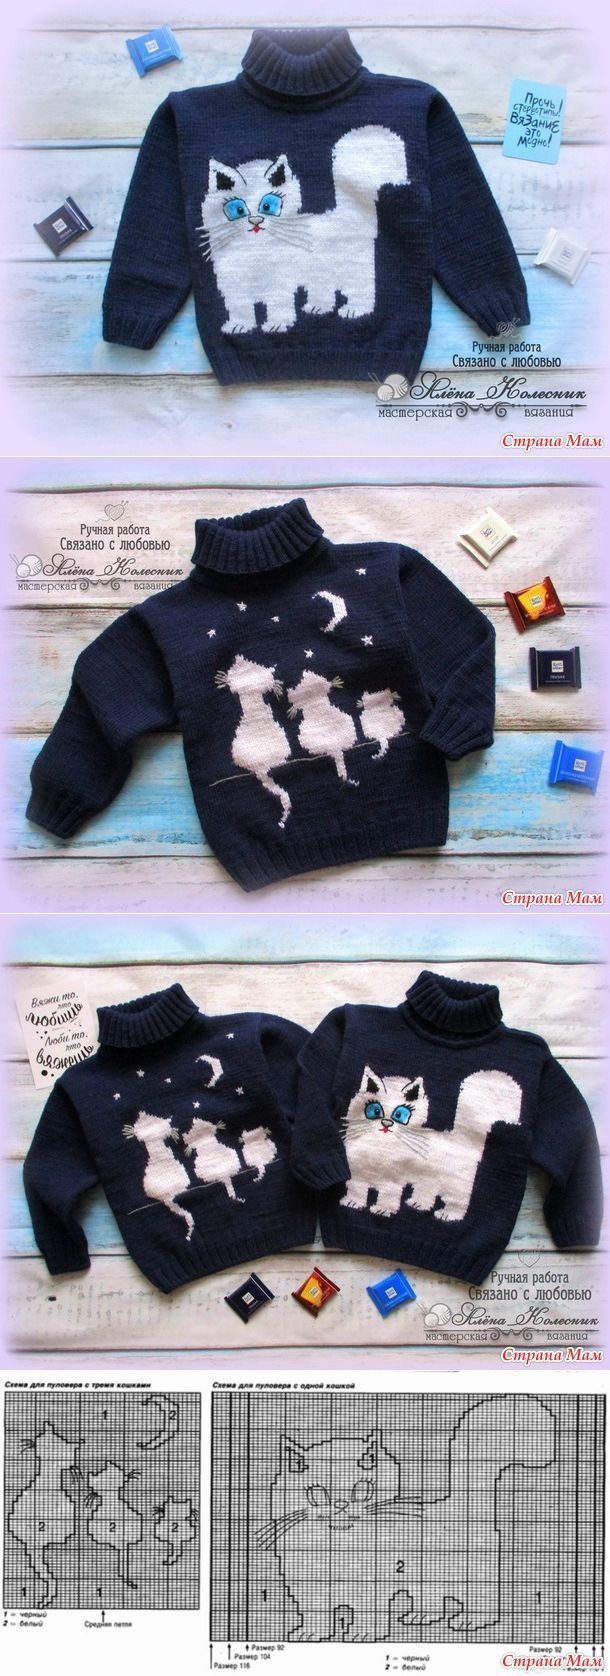 Sweater With Kitten Knitting Country Ma Country Ad 1 Pullover Mit Katzchen Stricken Co In 2020 Knitting Designs Crochet Sweater Baby Knitting Patterns